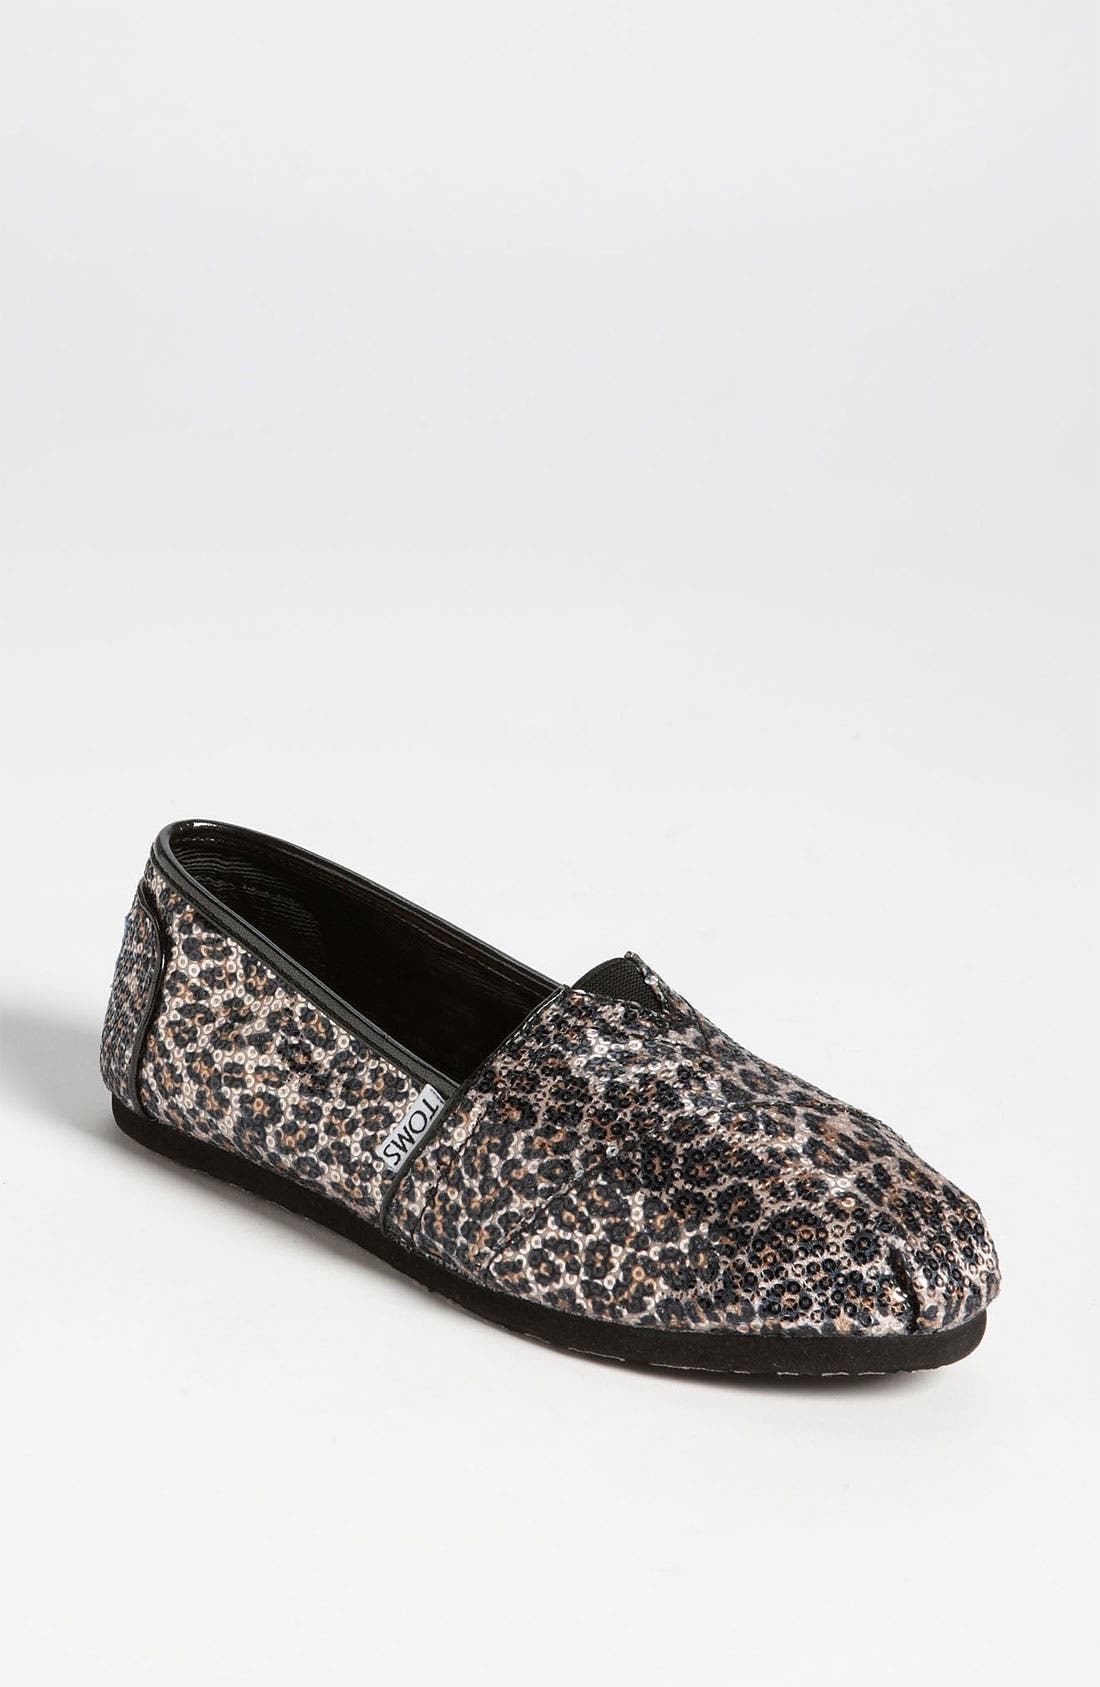 Alternate Image 1 Selected - TOMS 'Classic Panthera - Sequins' Slip-On (Women) (Nordstrom Exclusive)